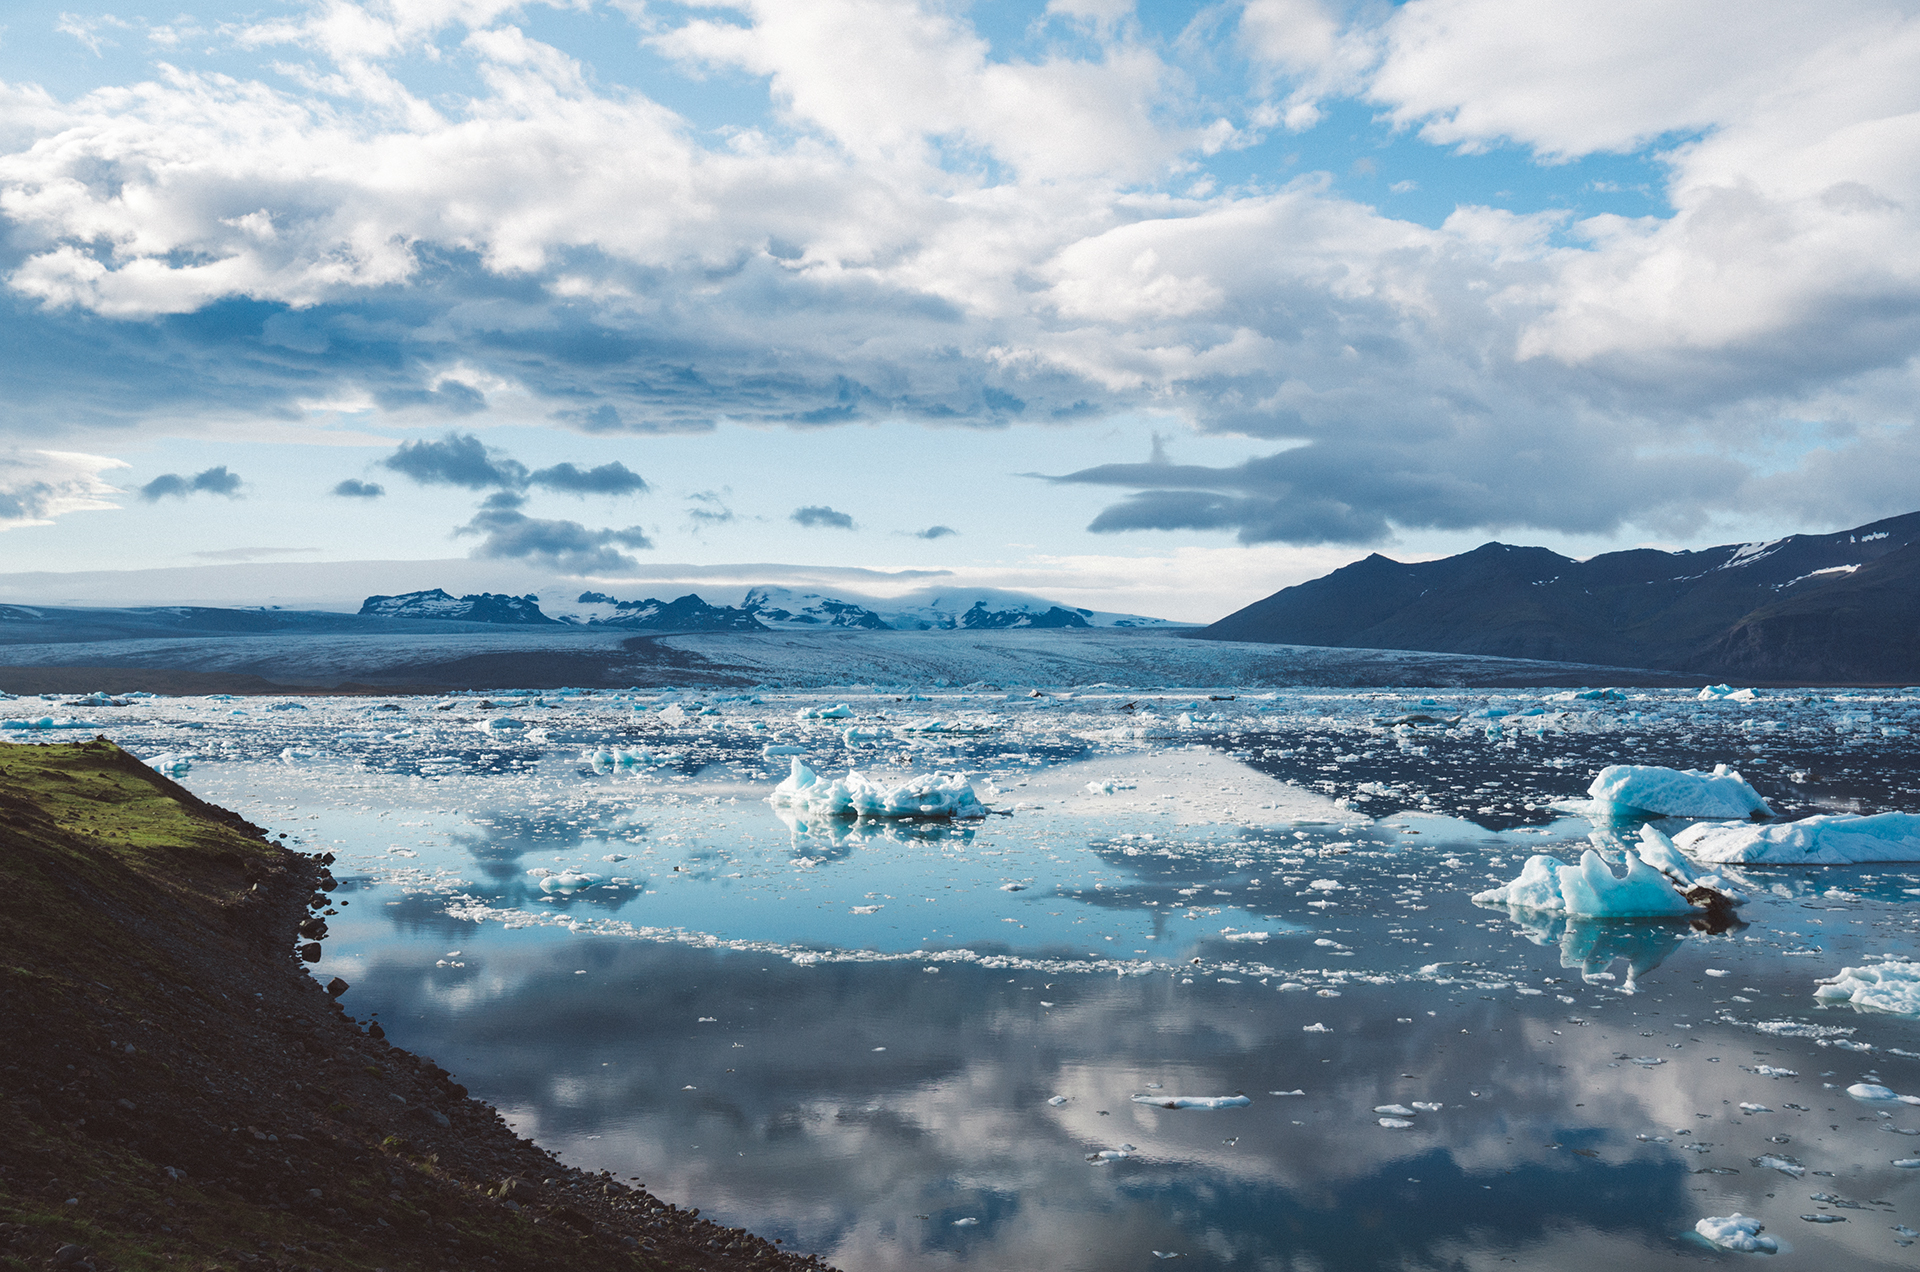 15 simple ways to save Earth from climate change